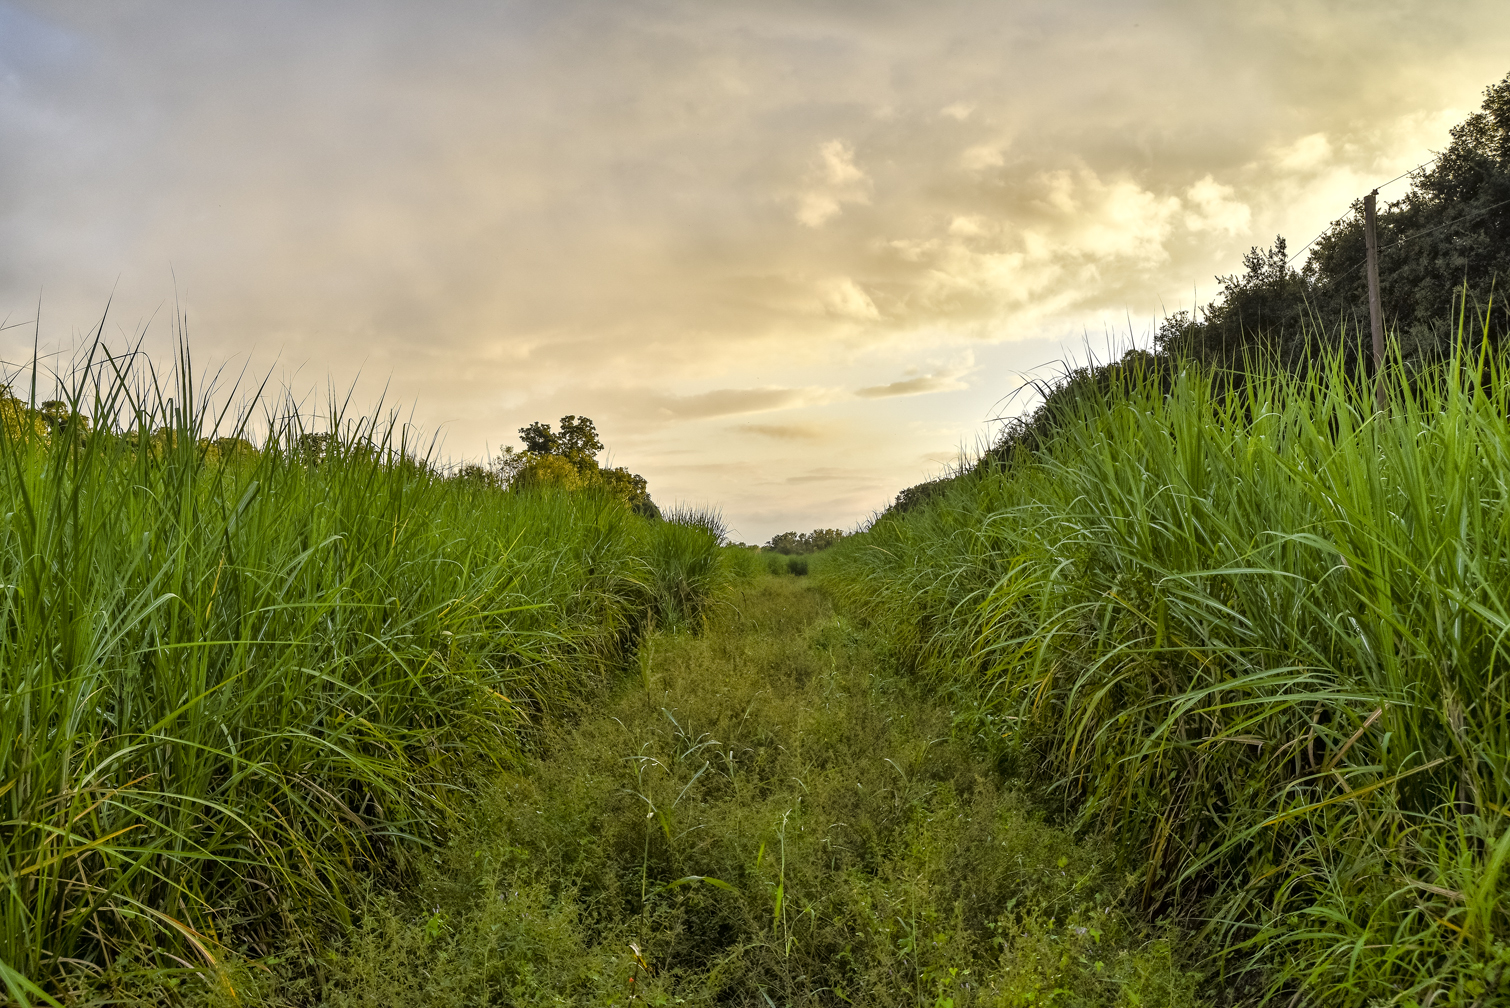 Sugarcane fields, sunset